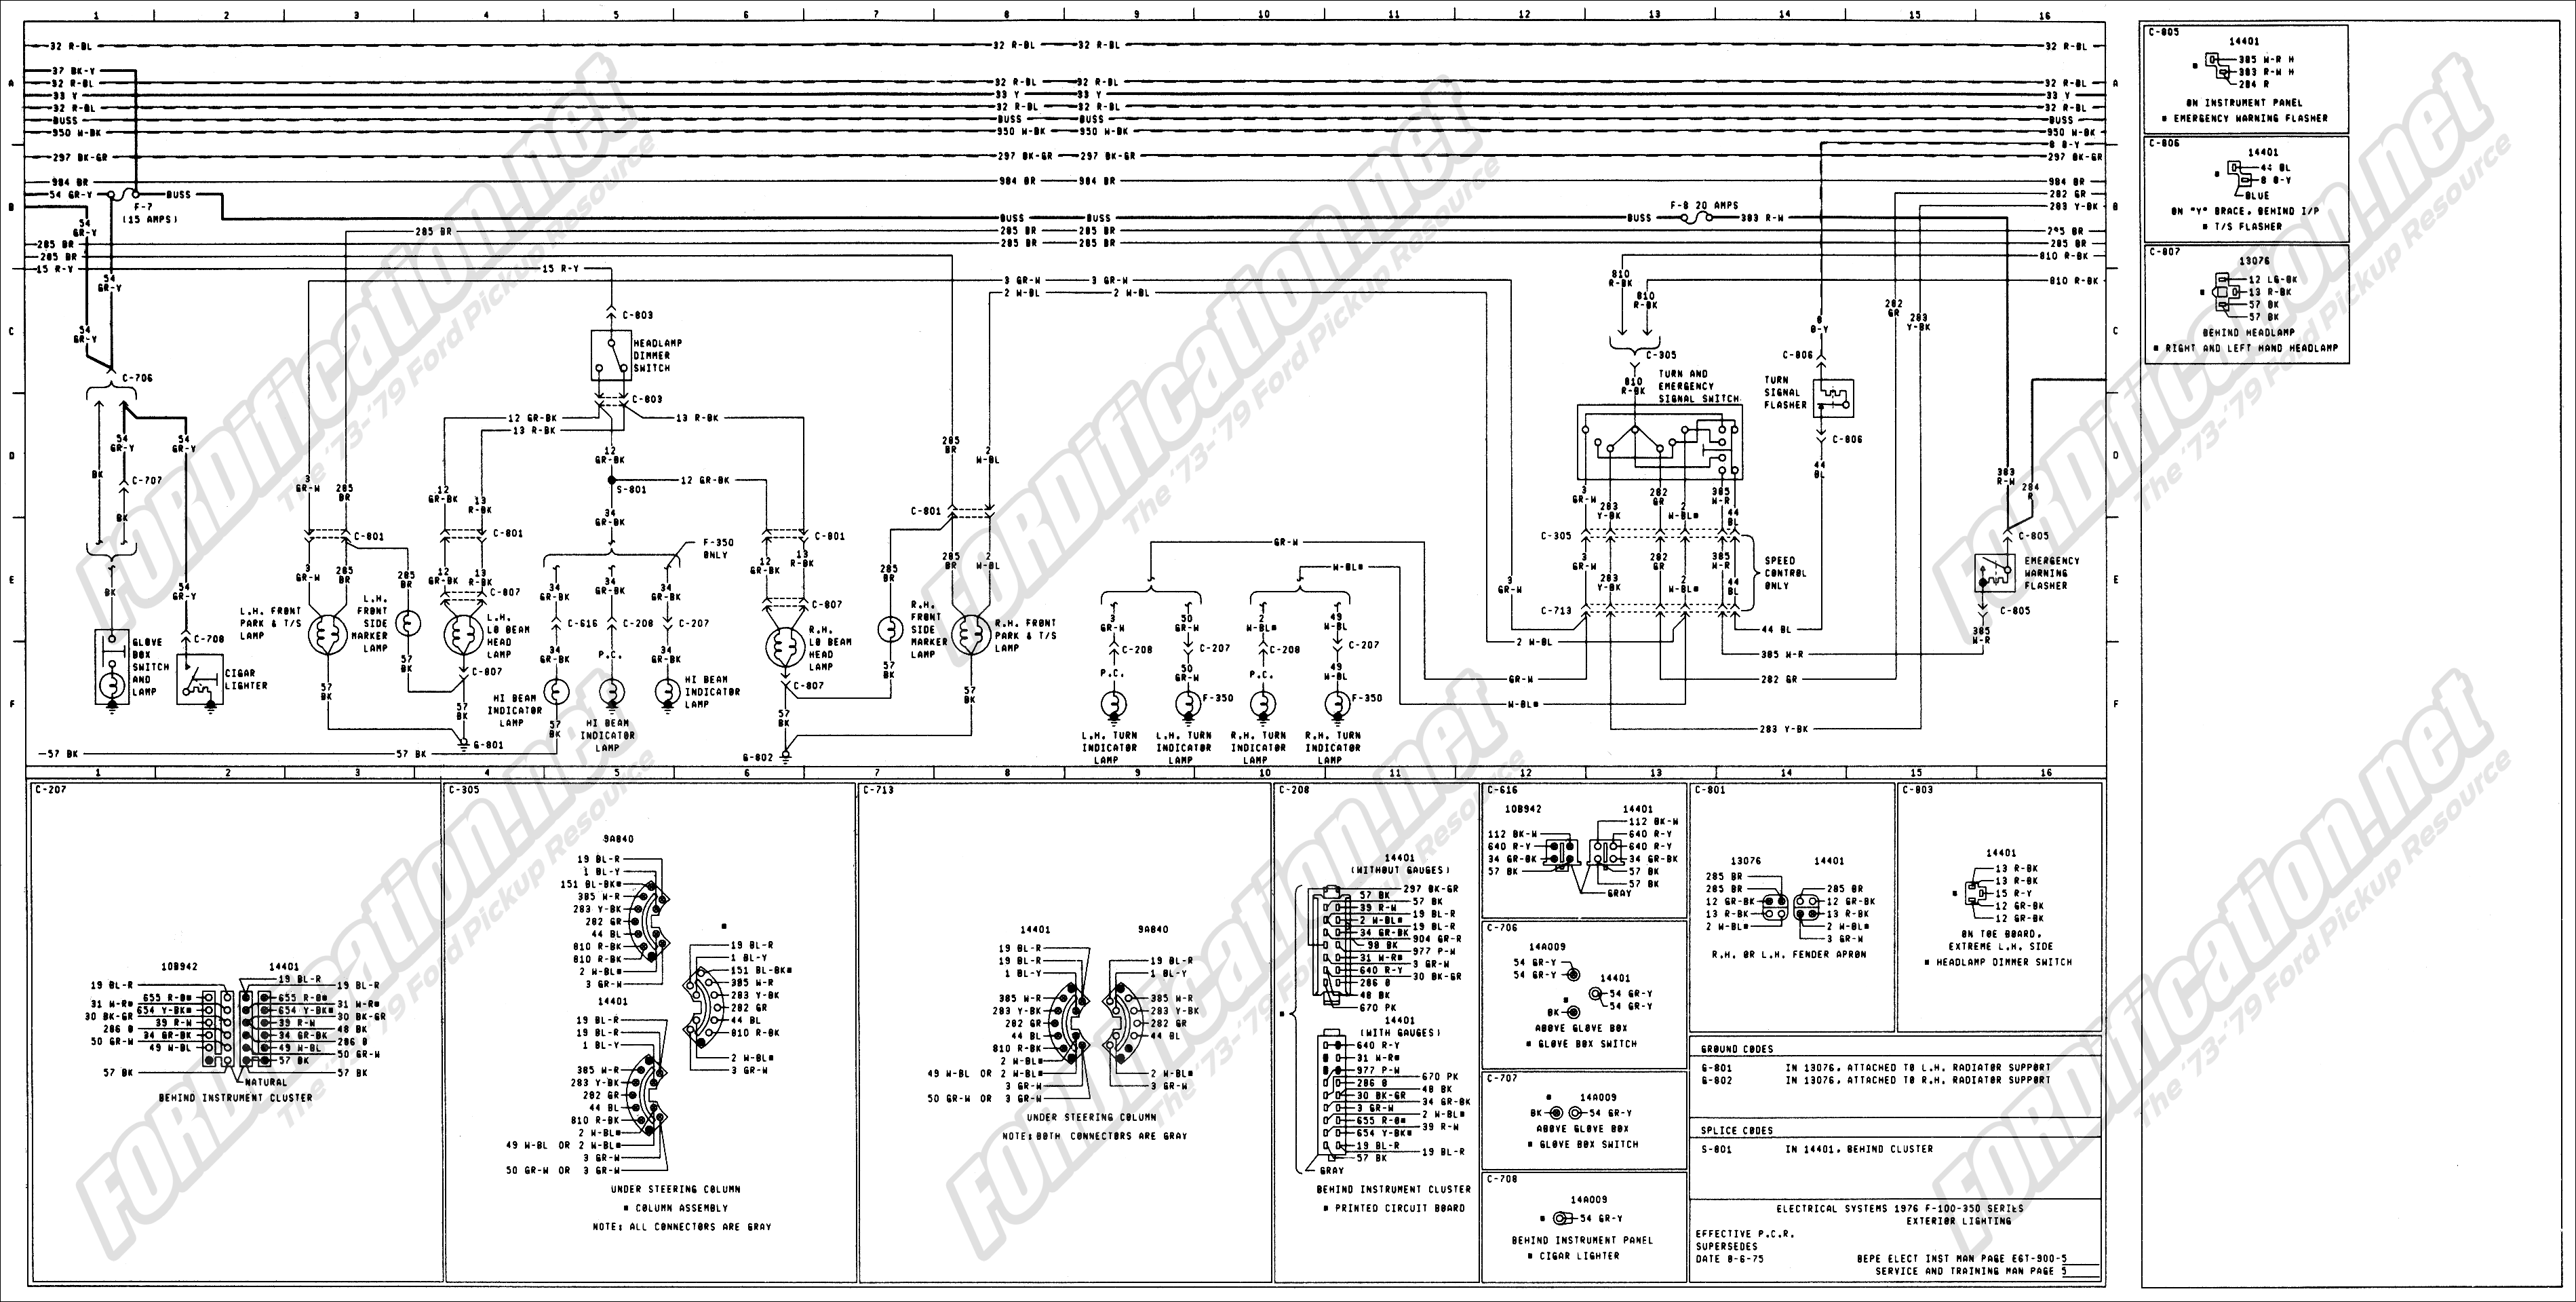 1973 F700 Wiring Diagram Everything About. 1973 1979 Ford Truck Wiring Diagrams Schematics Fordification Rh Dump. Ford. 1966 Ford Mustang Starter Relay Wiring At Scoala.co